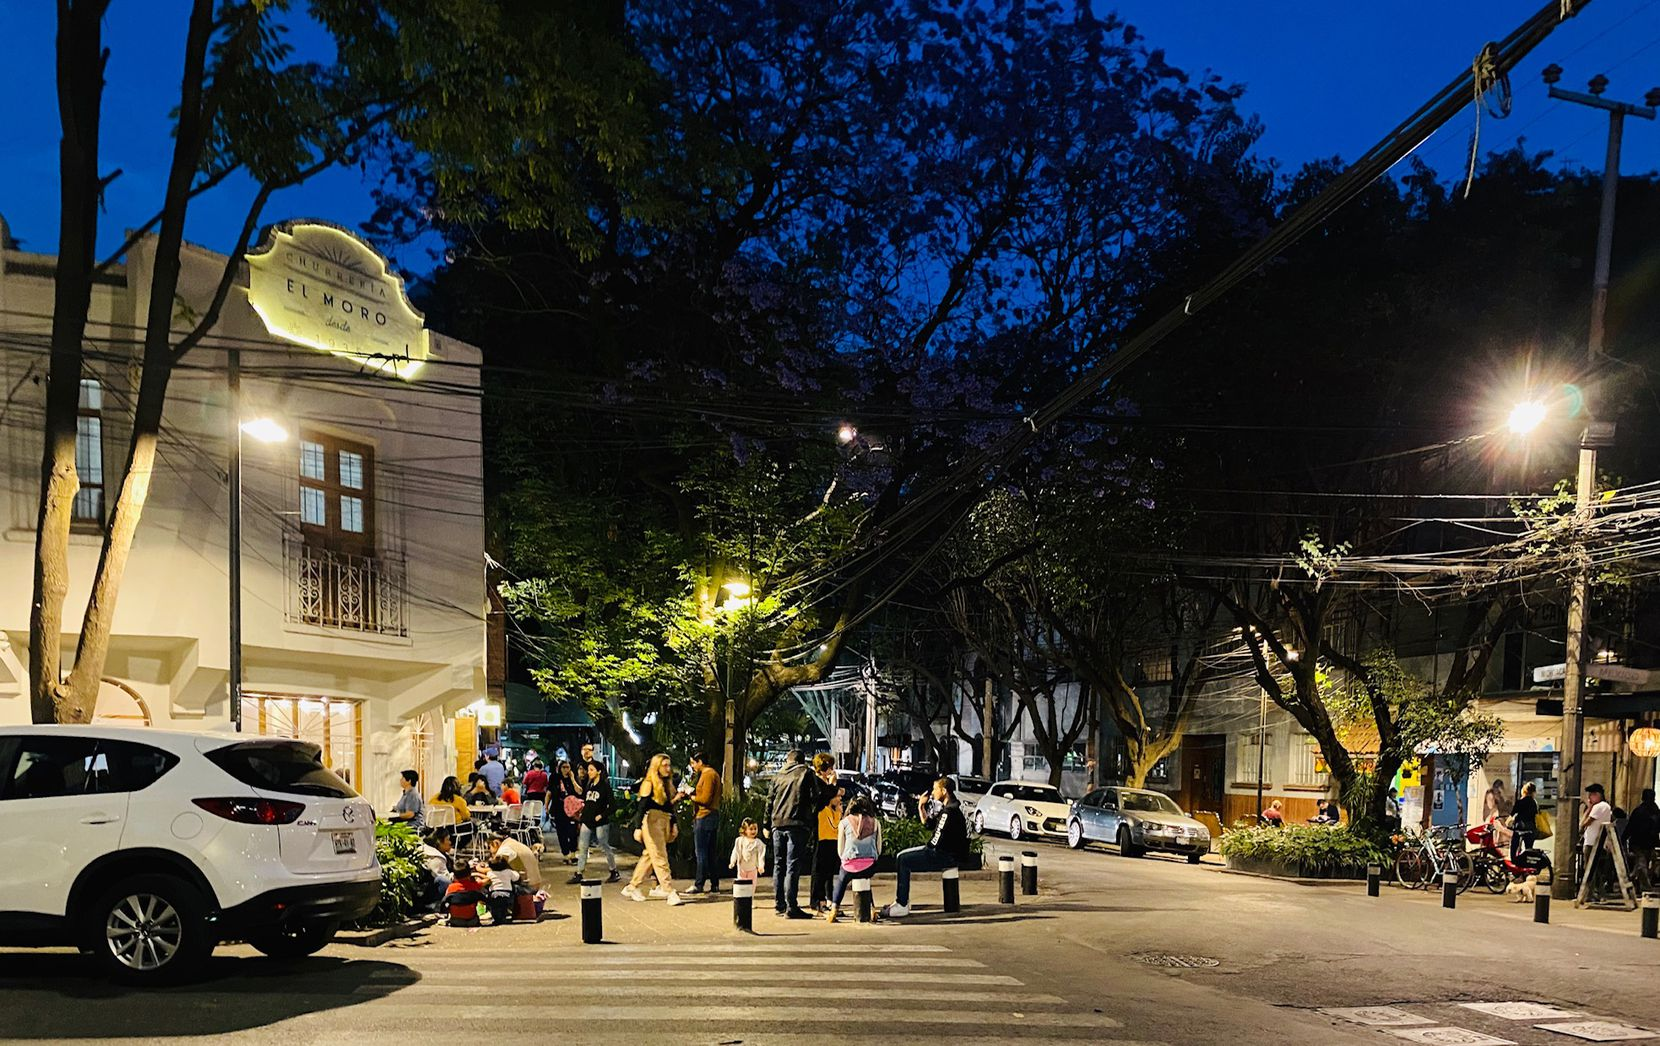 Mexico City's Parque Mexico, seen here earlier this week, is a favorite hang out for tourists, a leafy neighborhood with dozens of outdoor coffee places and eateries, including El Moro, which specializes in churros, something akin to sweet, fried tacos.